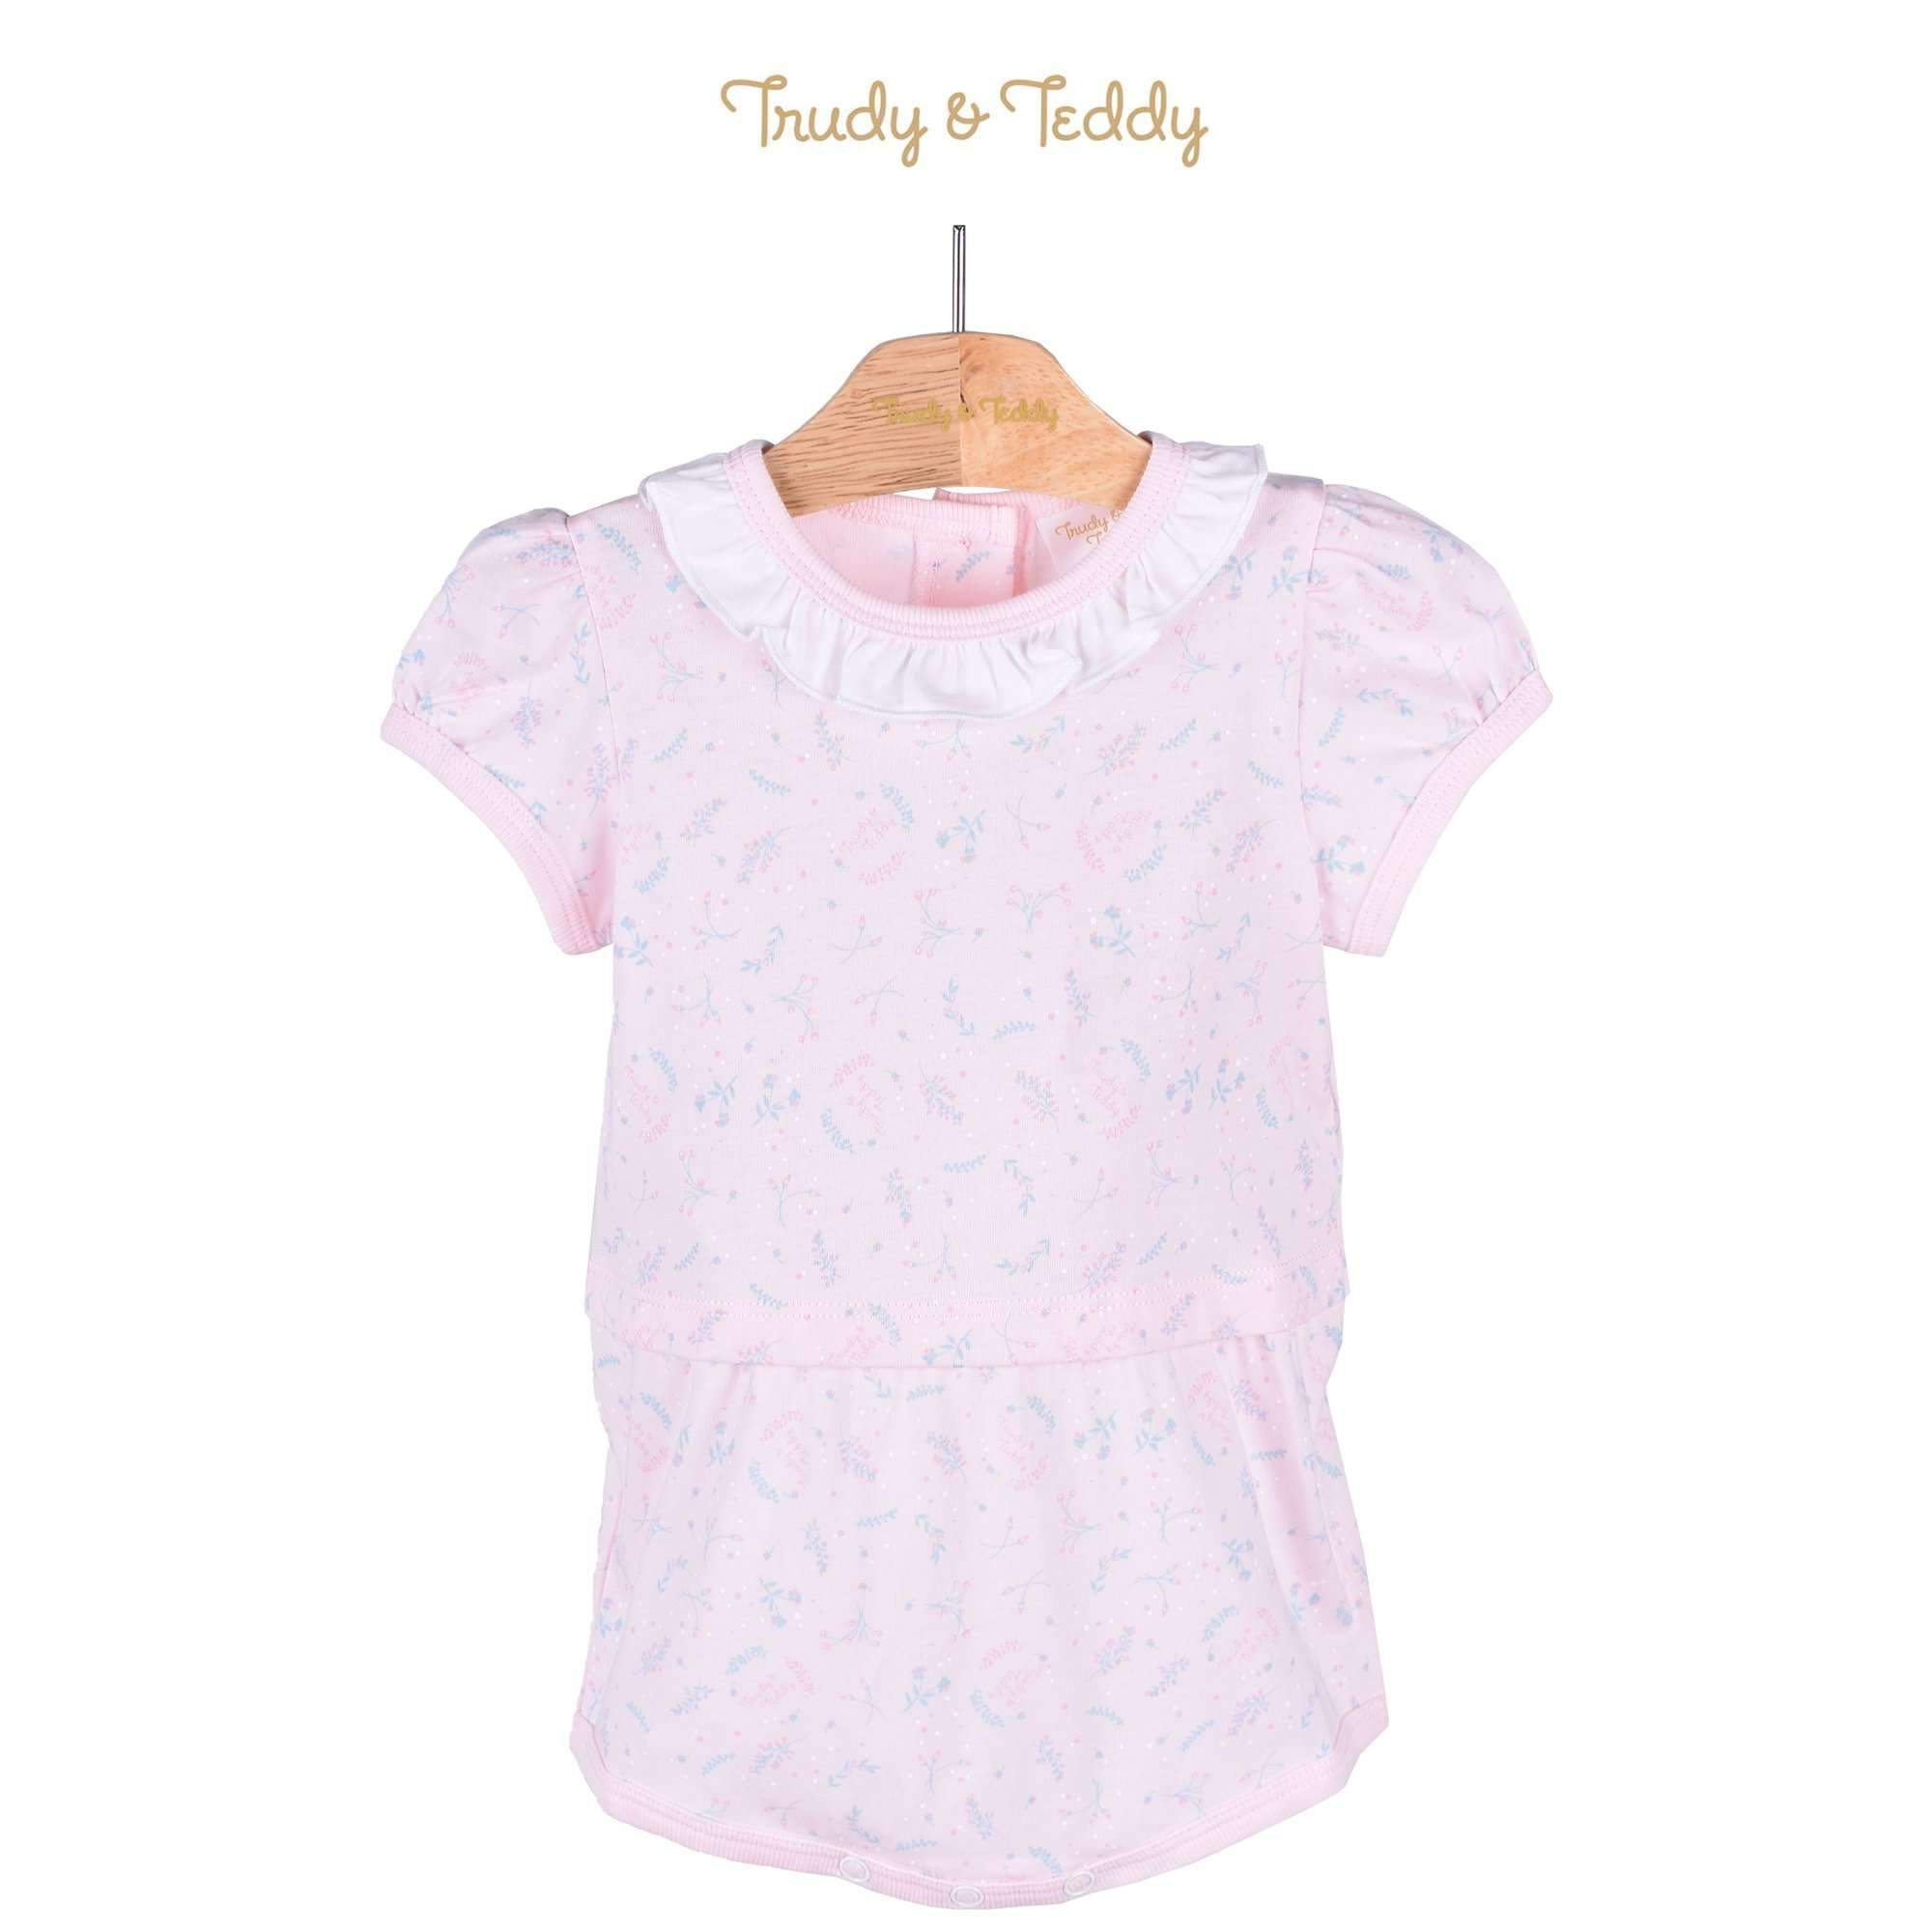 Trudy & Teddy Baby Girl Short Sleeve Romper 820022-361 : Buy Trudy & Teddy online at CMG.MY